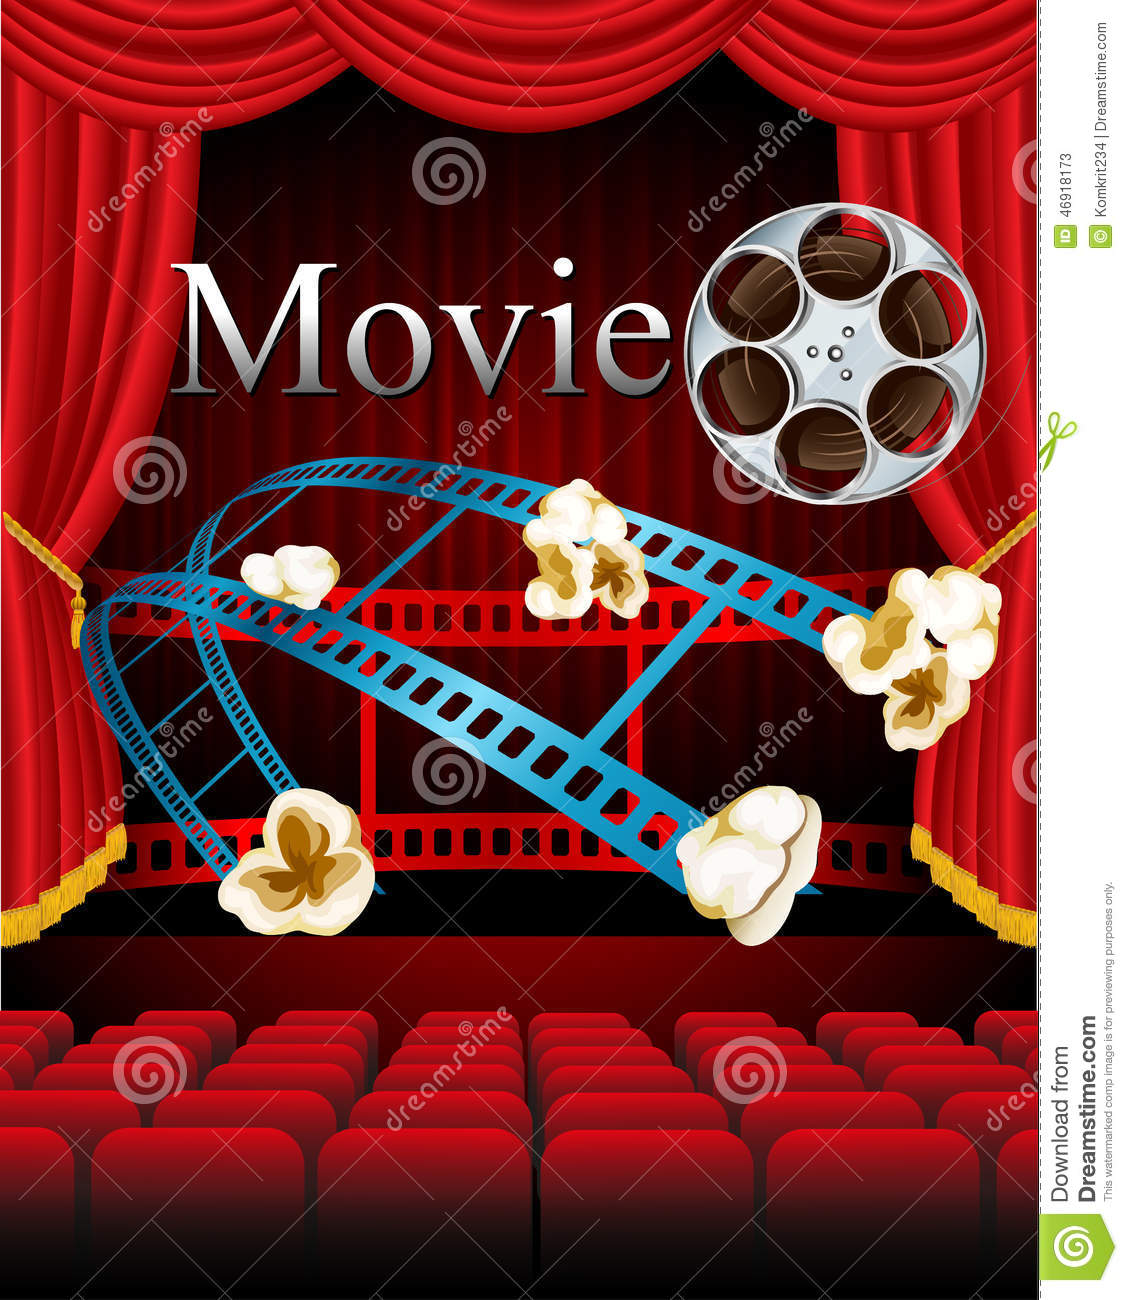 Film Movies Cinema With Red Curtain Seat In Theater Stock Vector Illustration Of Cardboard Design 46918173